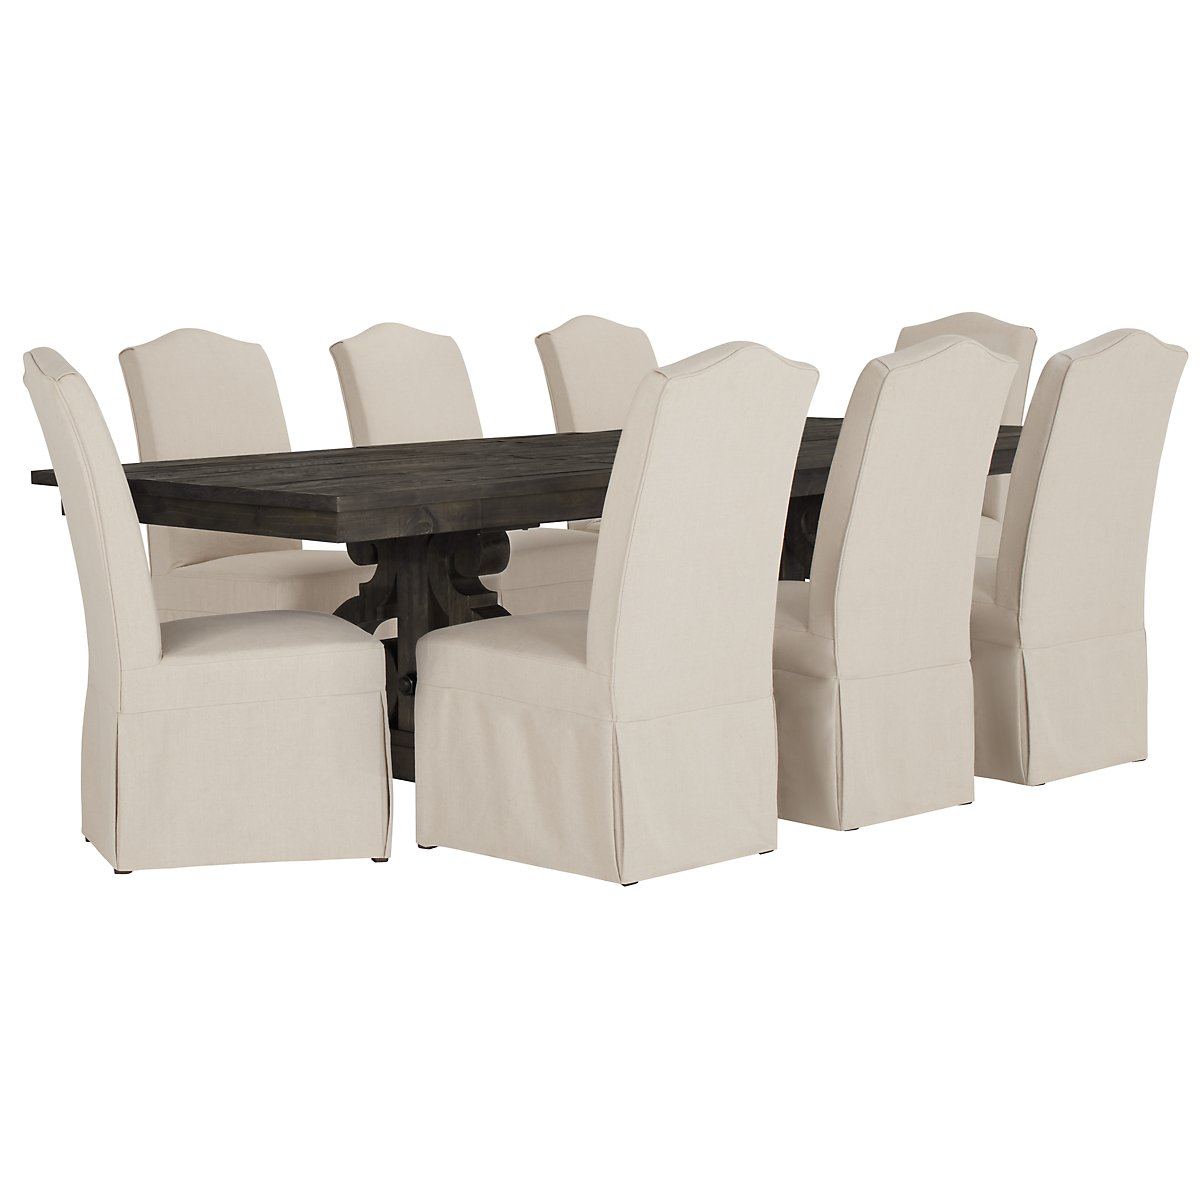 Sonoma Dark Tone Wood Table & 4 Upholstered Chairs